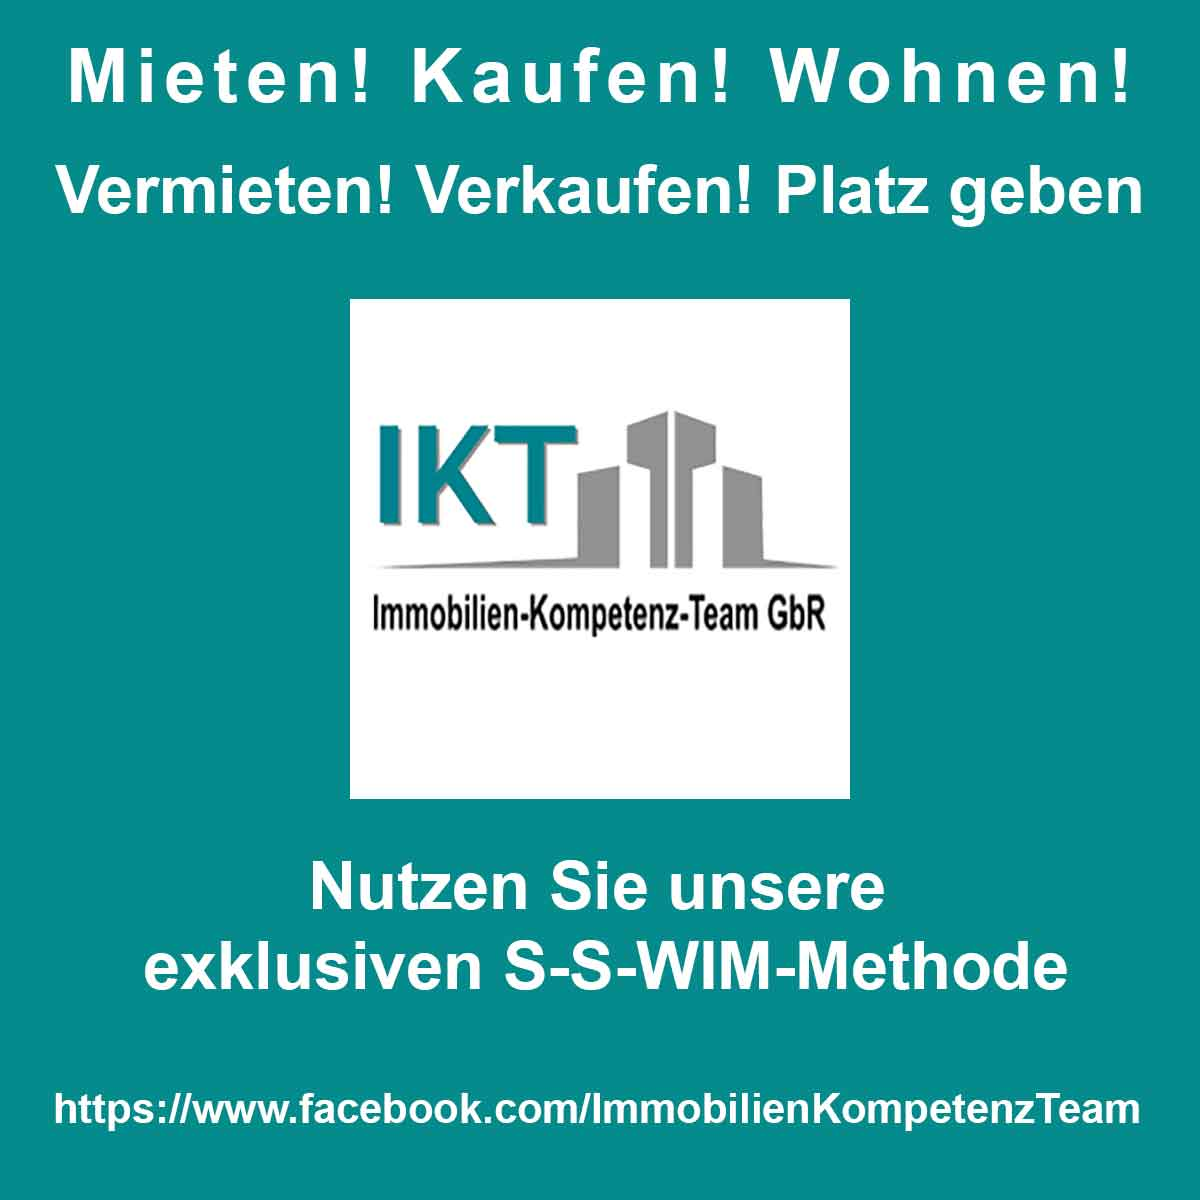 Immobilien-Kompetenz-Team Call to action